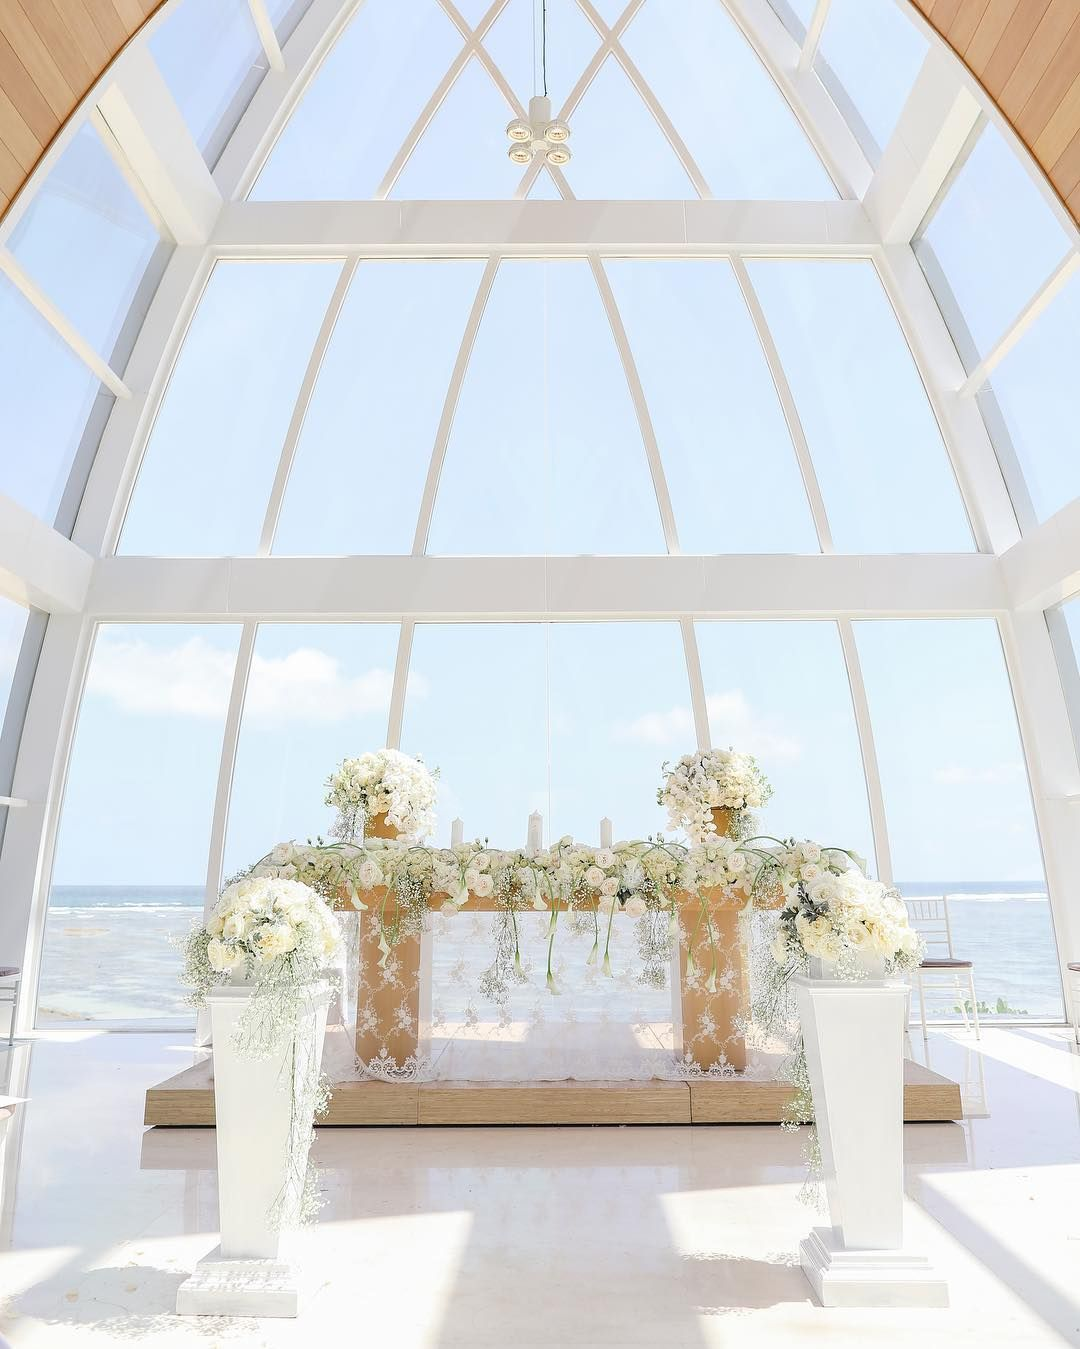 Magnificent View From The Wedding Altar Of The Majestic Chapel In The Ritz Carlton Bali The Wedding Of Kenneth Caroli Wedding Altars Wedding Chapel Wedding